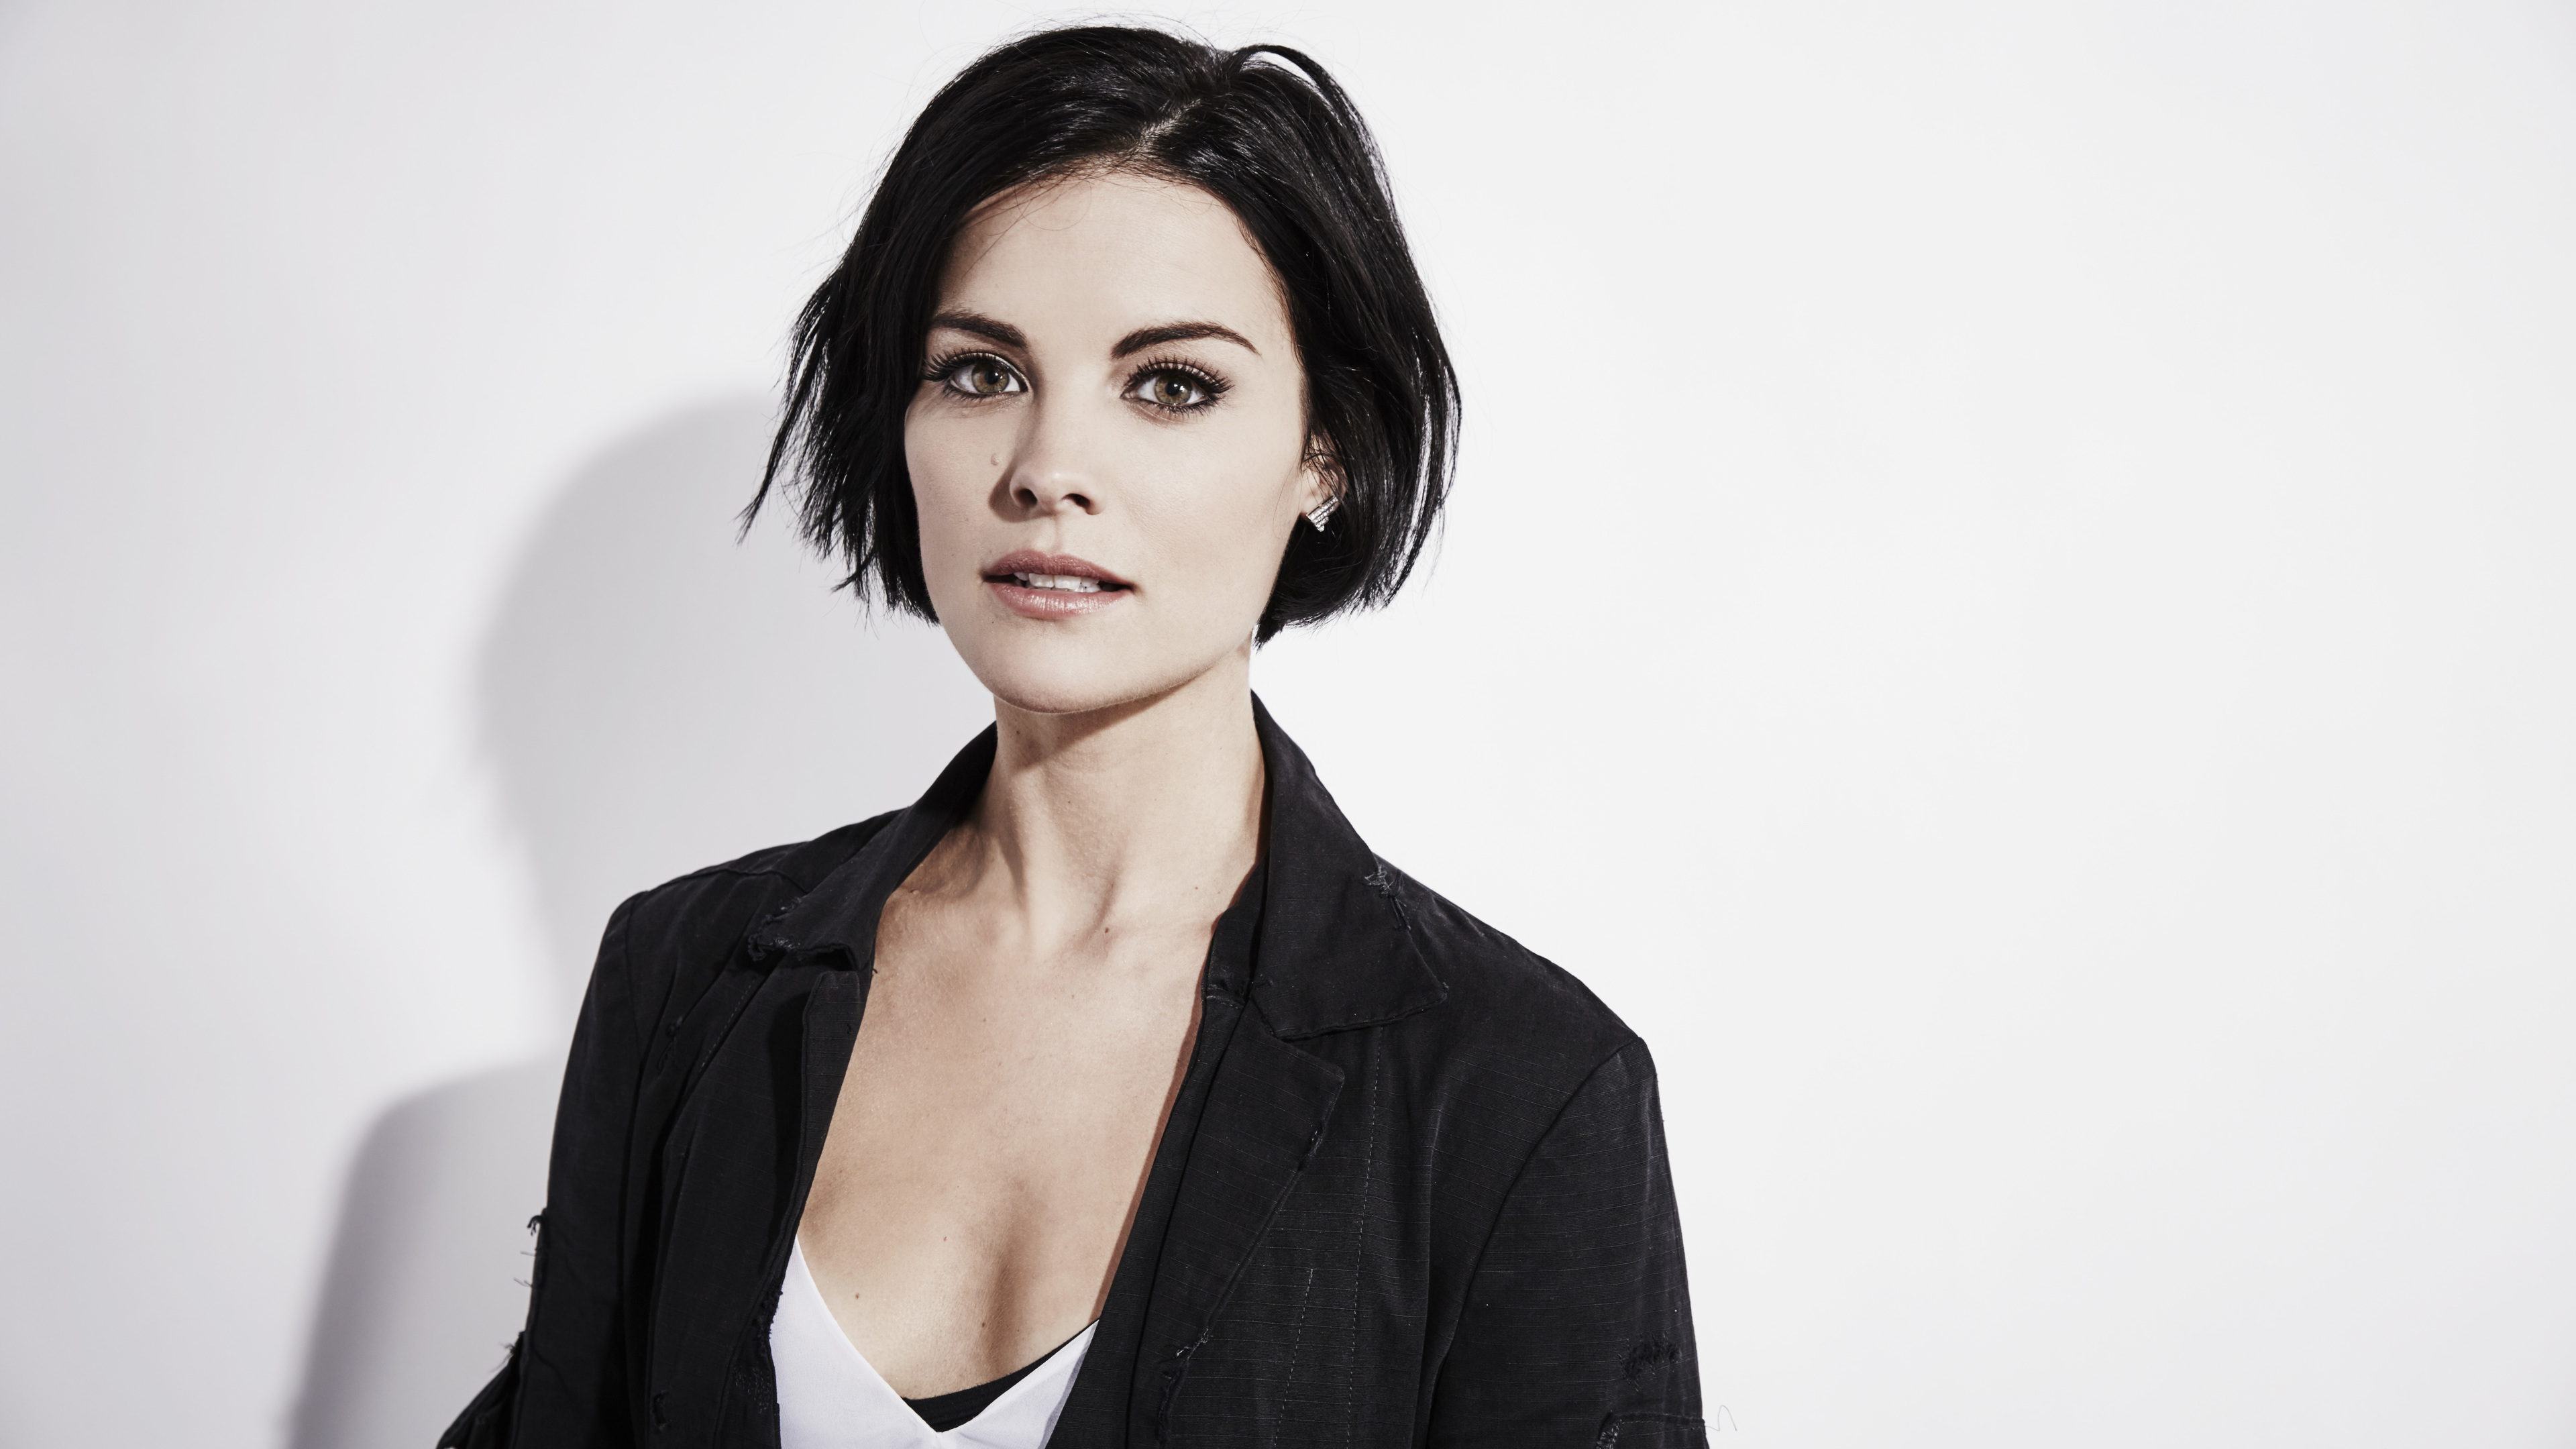 jaimie alexander 5k 1536862166 - Jaimie Alexander 5k - jaimie alexander wallpapers, hd-wallpapers, girls wallpapers, celebrities wallpapers, 5k wallpapers, 4k-wallpapers